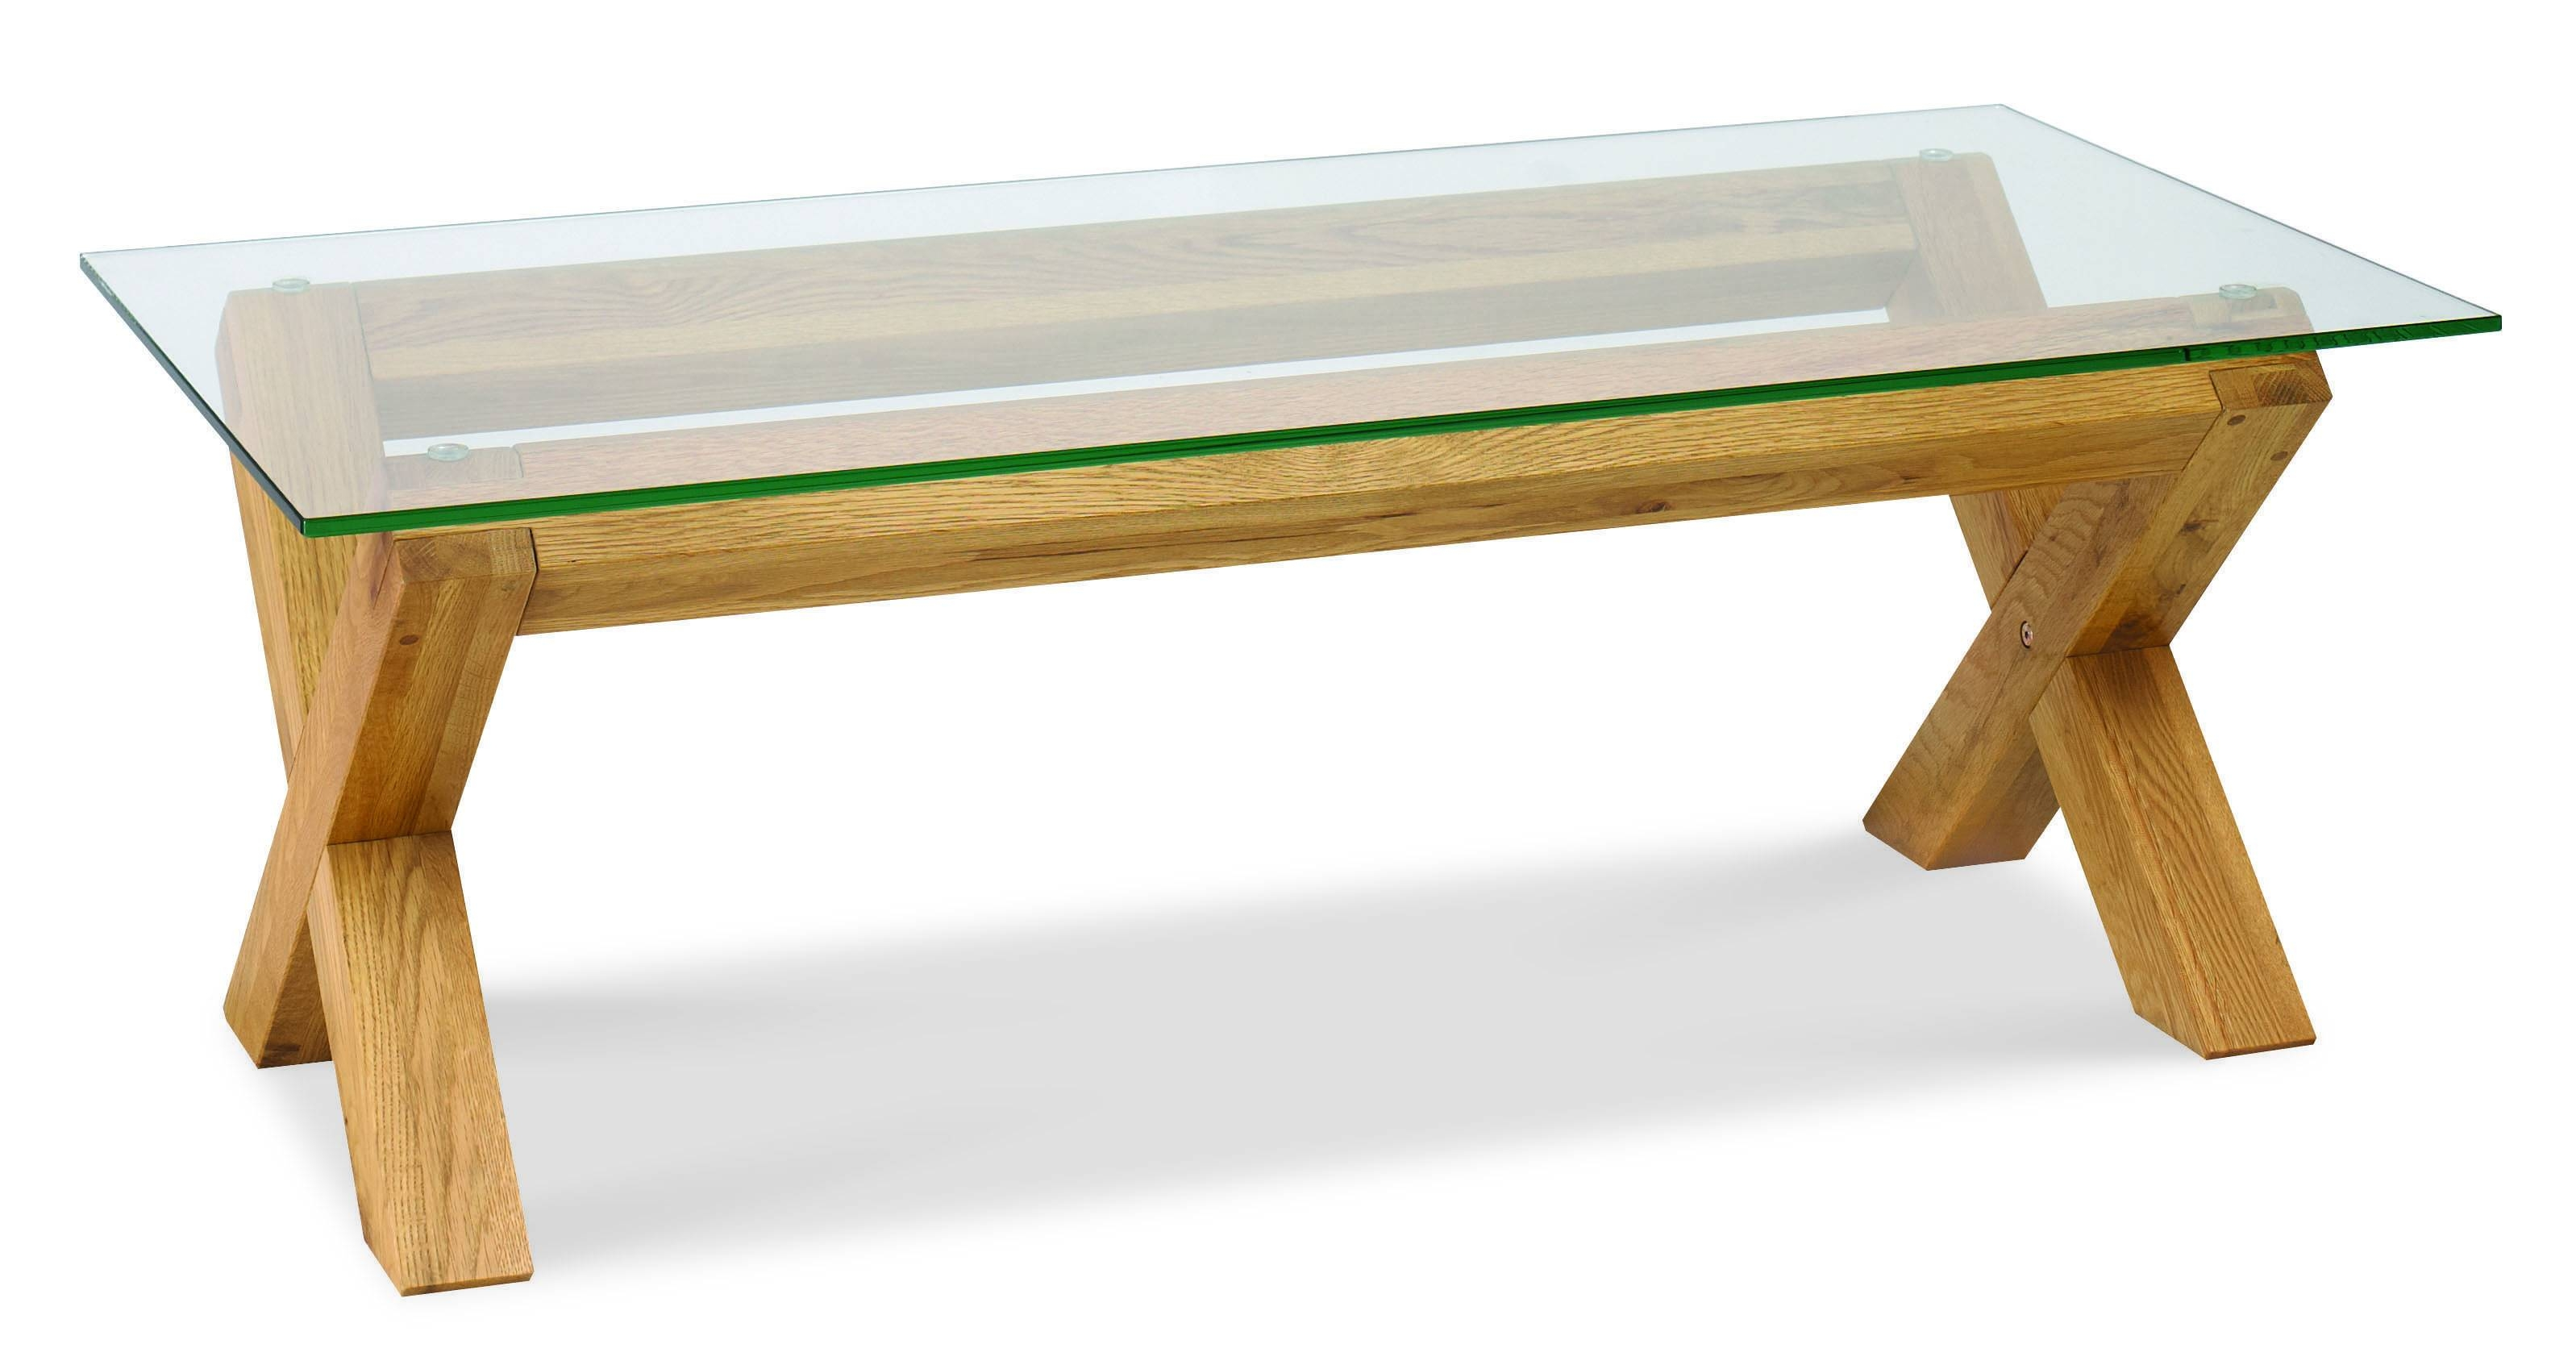 Lyon Oak Glass Coffee Table | Oak Furniture Solutions intended for Oak And Glass Coffee Table (Image 13 of 15)